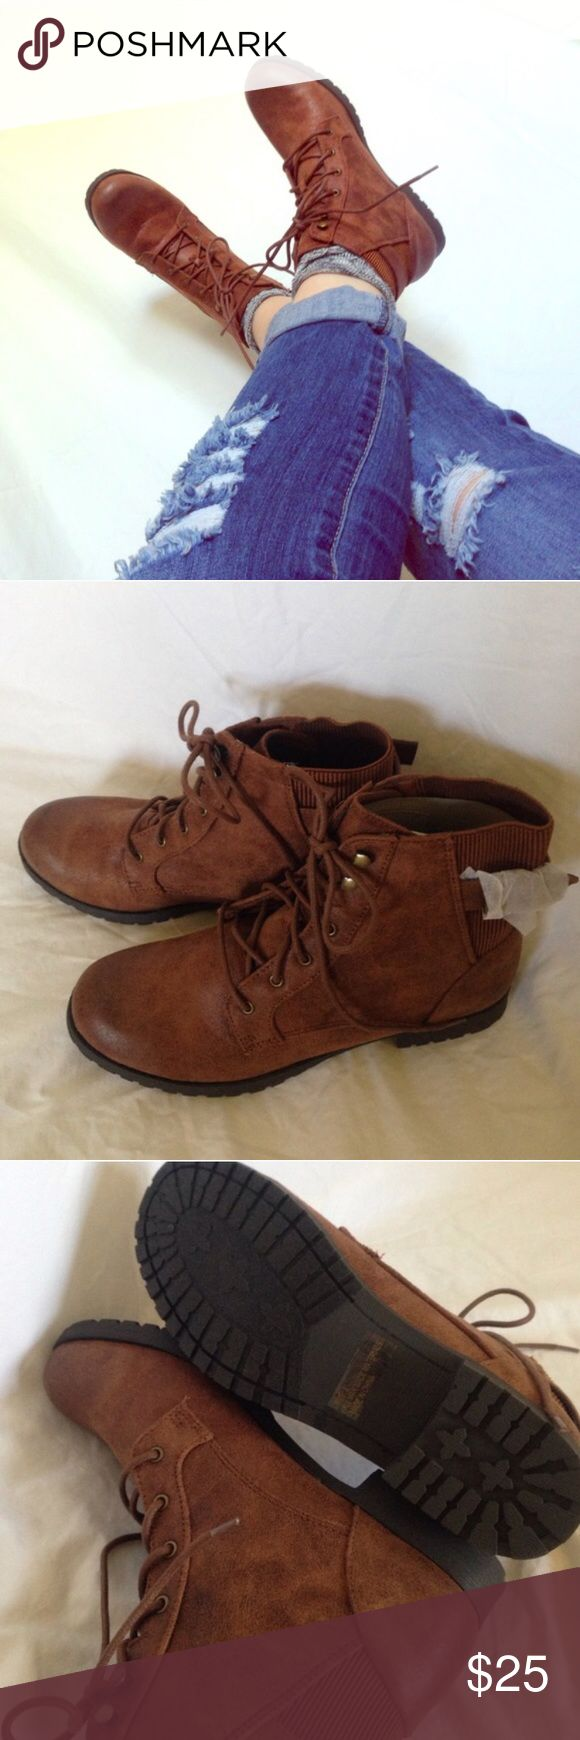 Ankle Combat Boots NWT in original box. Brown with gold accents. Stylish and comfortable boots to compliment any outfit! Charlotte Russe Shoes Combat & Moto Boots